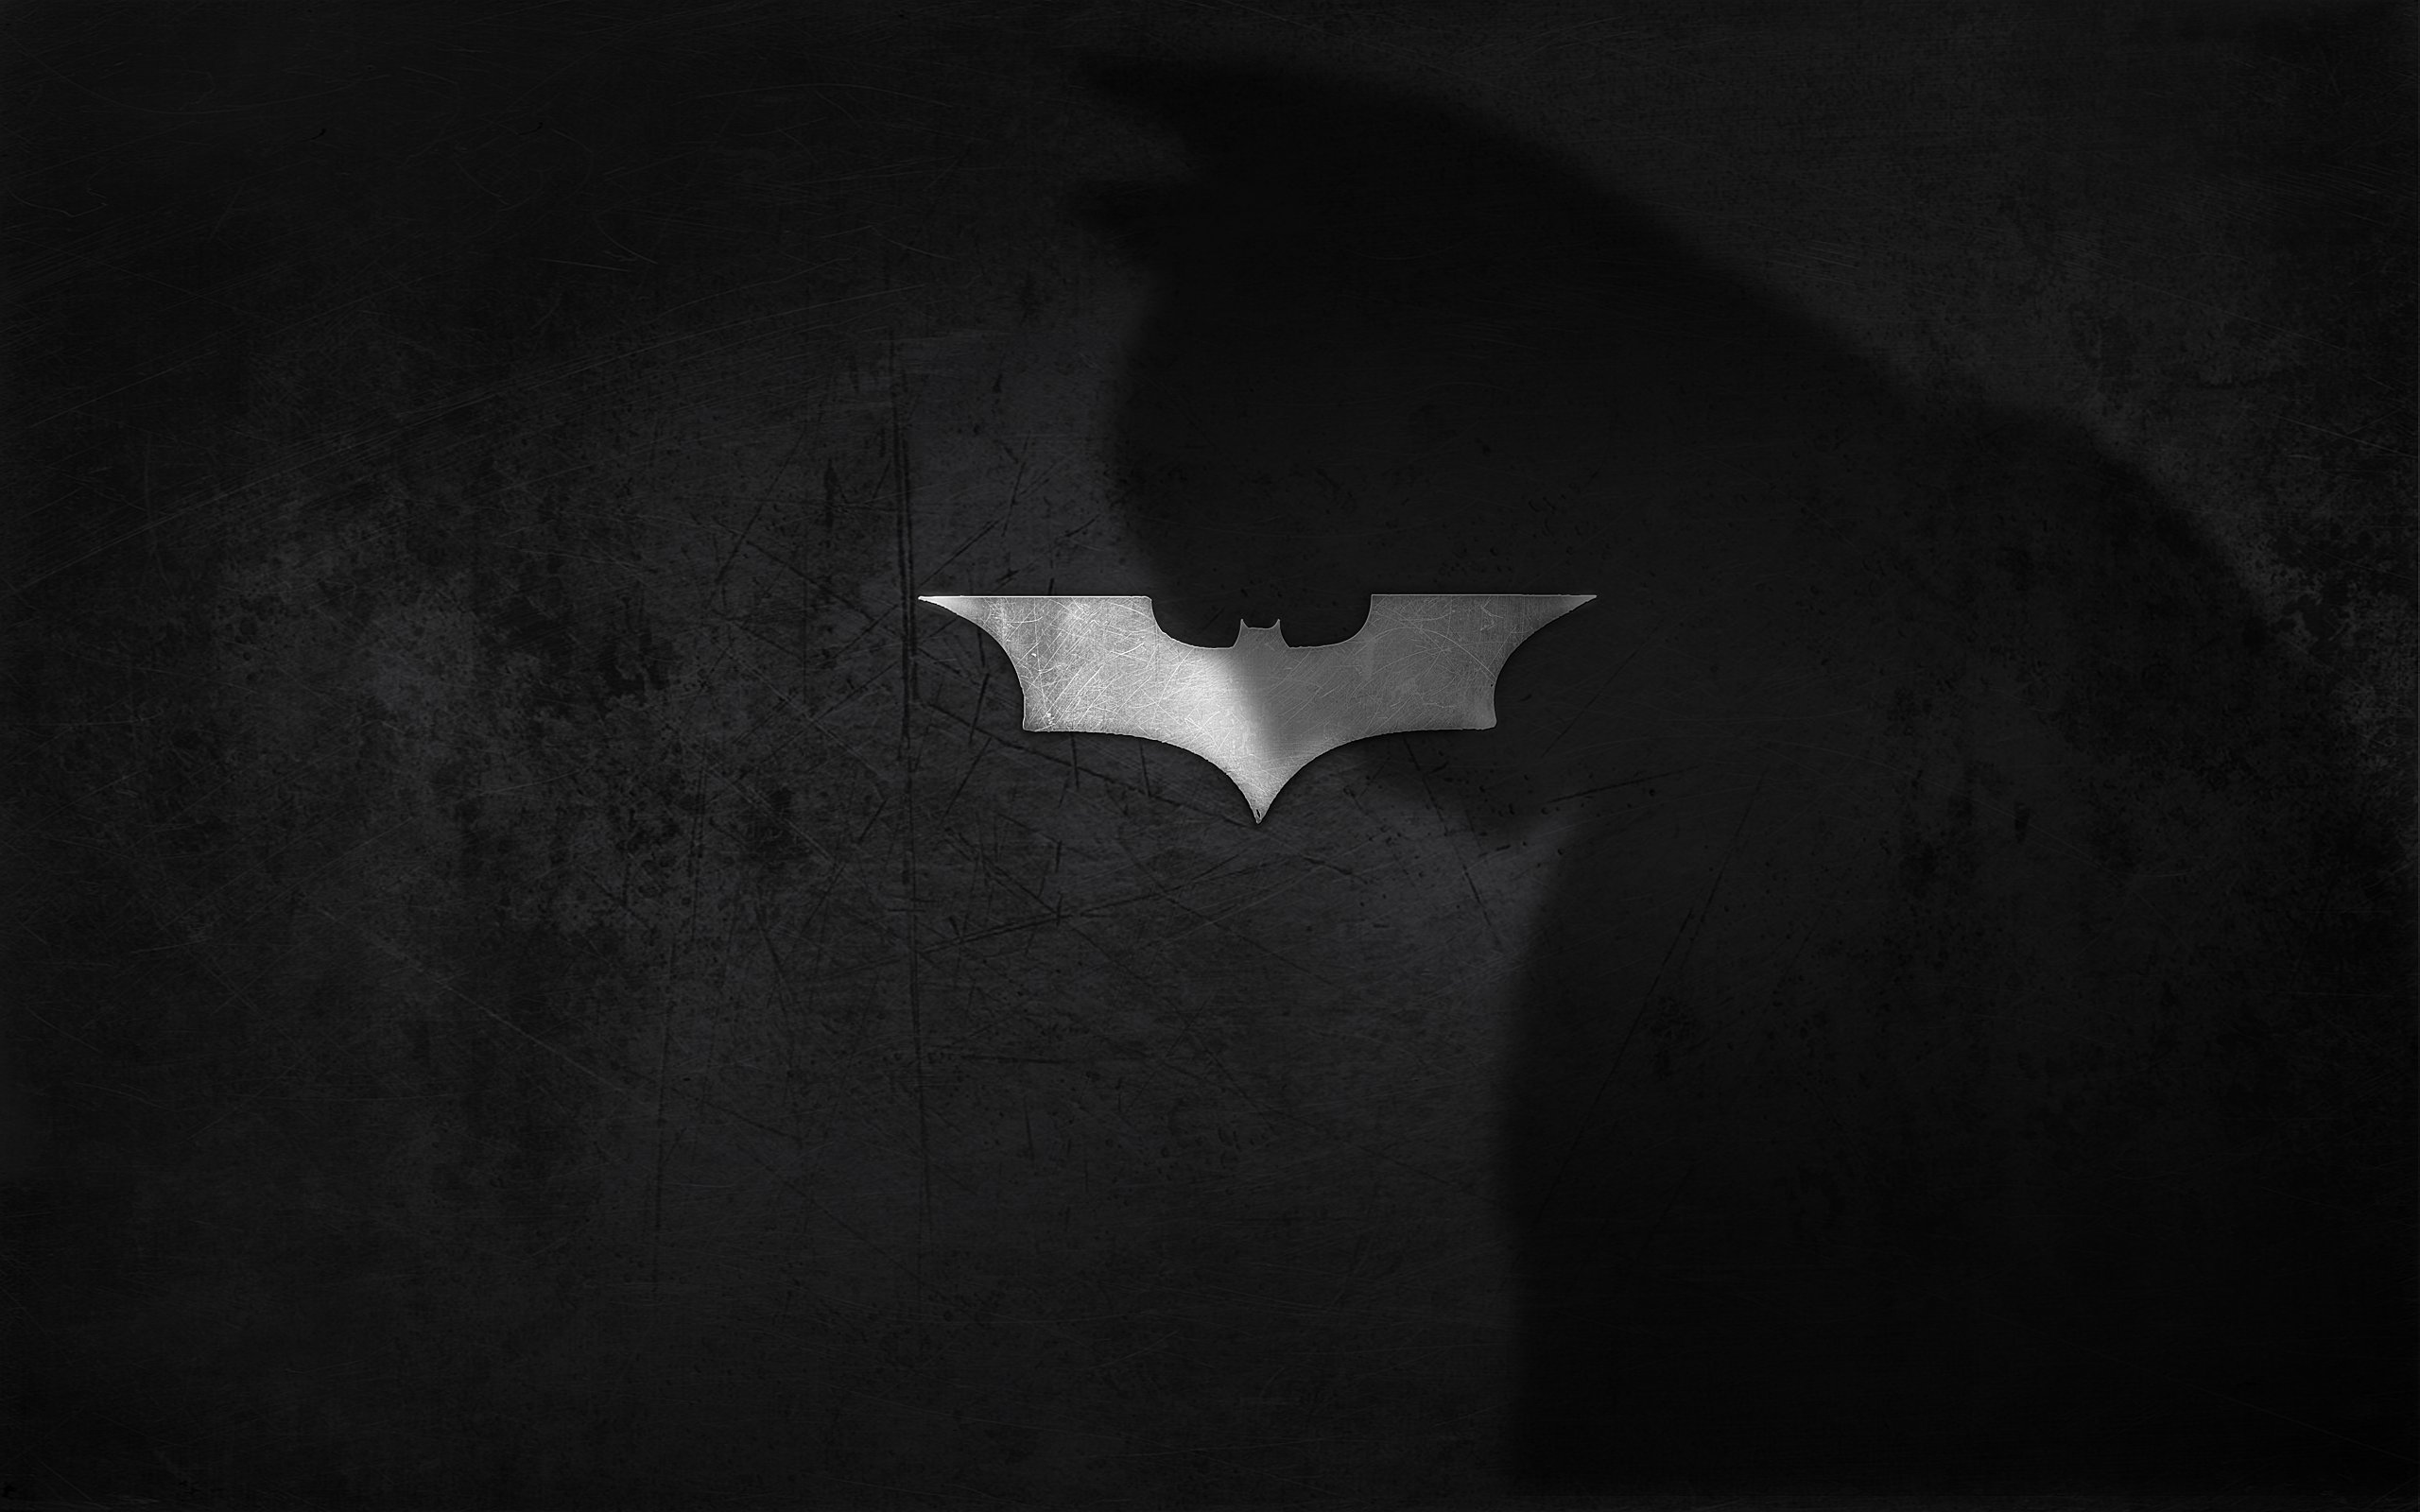 Batman the dark knight wallpaper 2560x1600